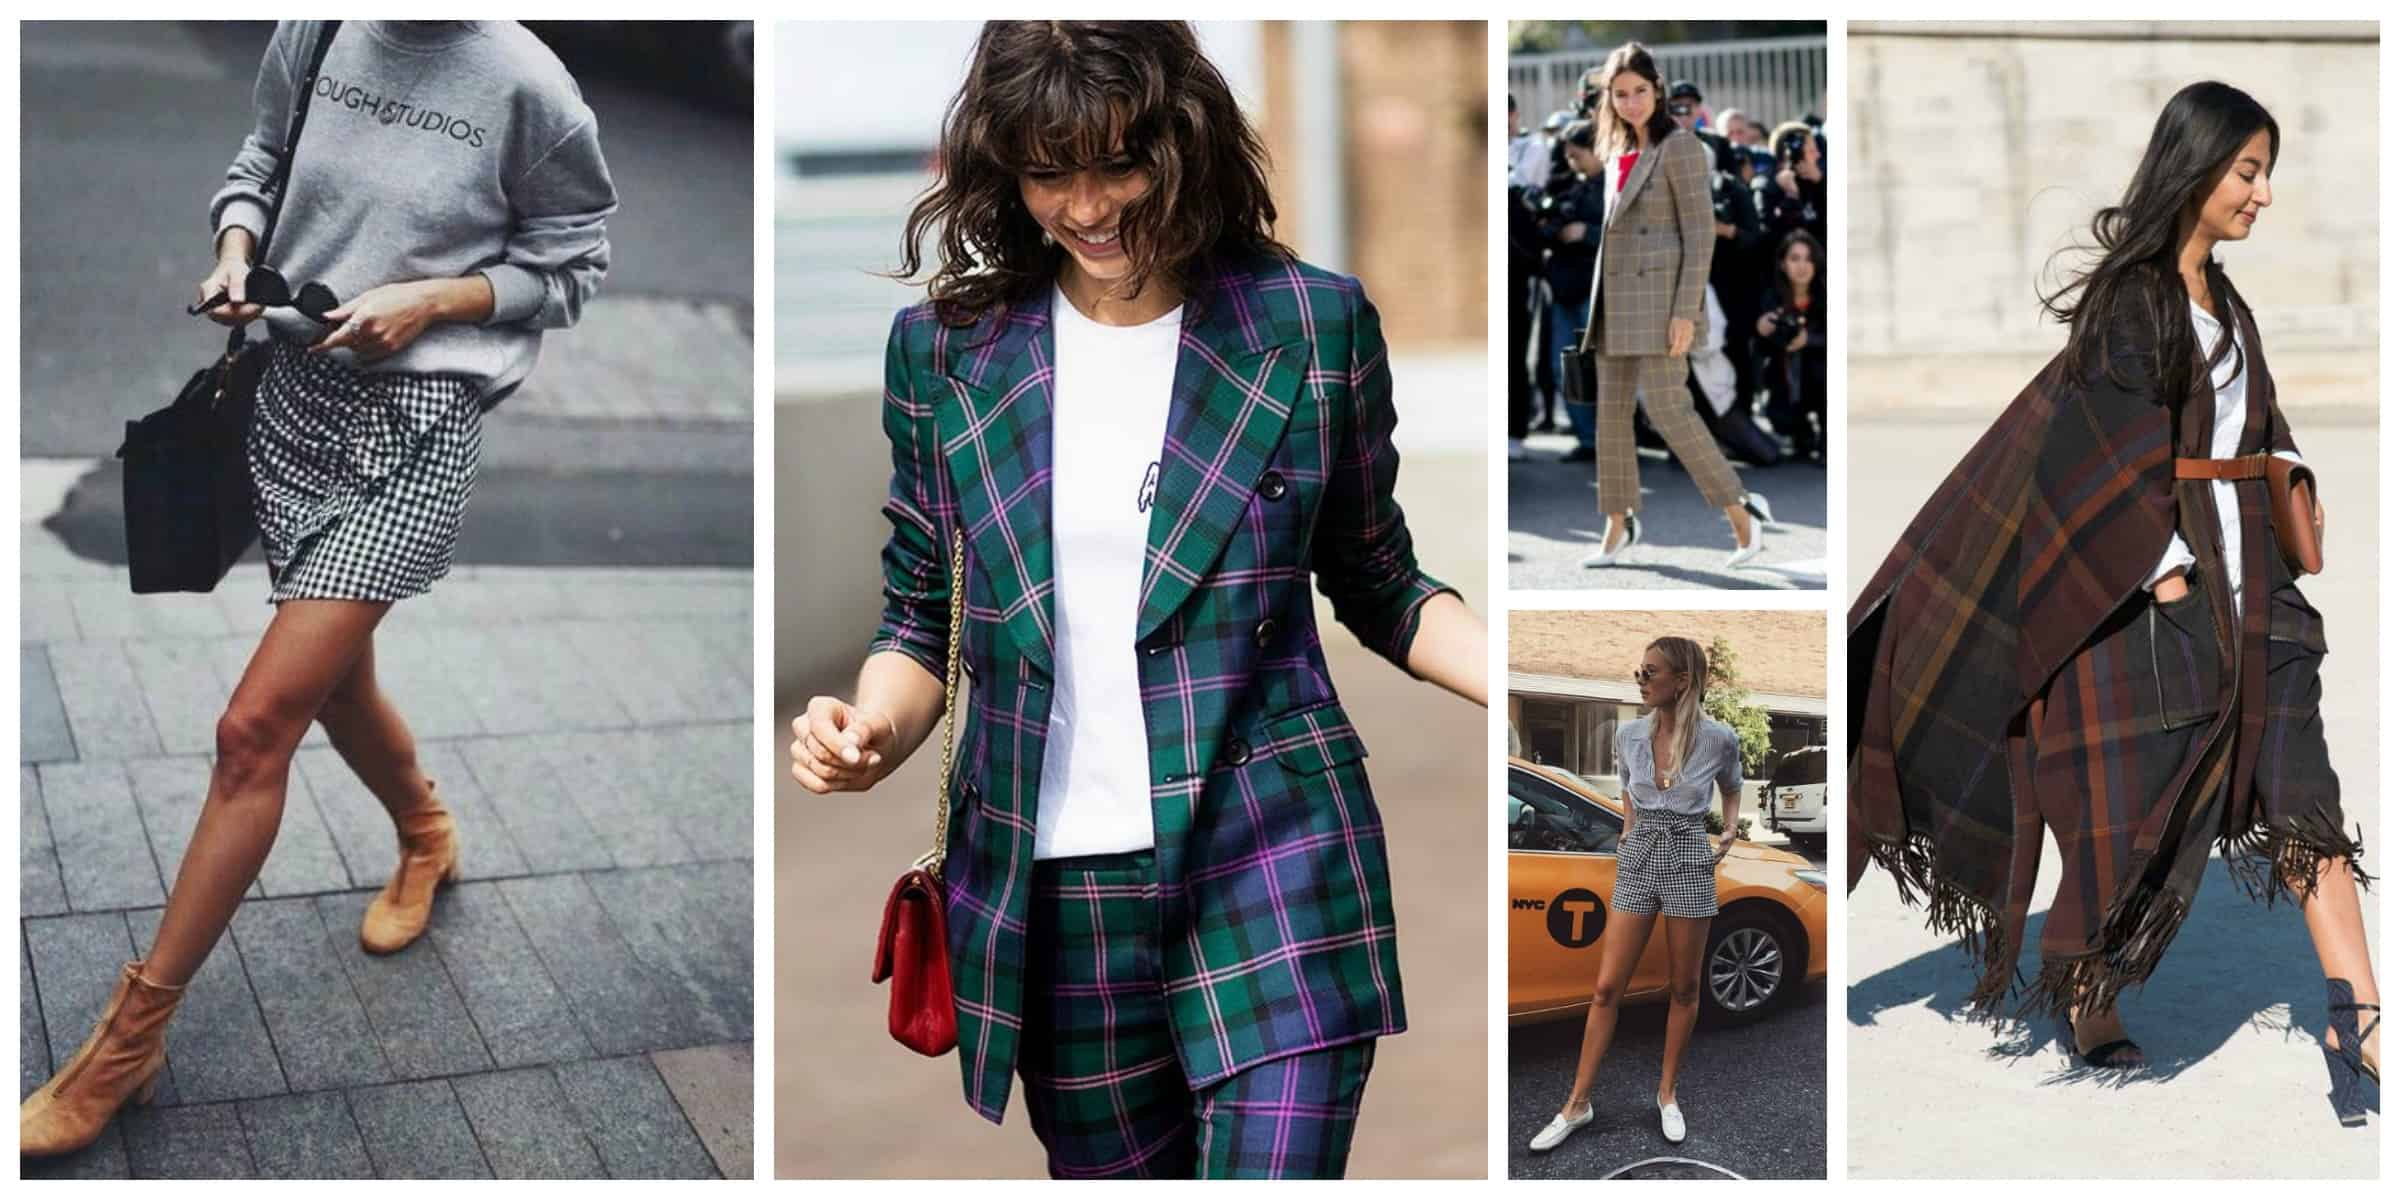 e63d63fa0db 2018 Trend  How To Wear PLAID Without Looking Dated  – The Fashion ...